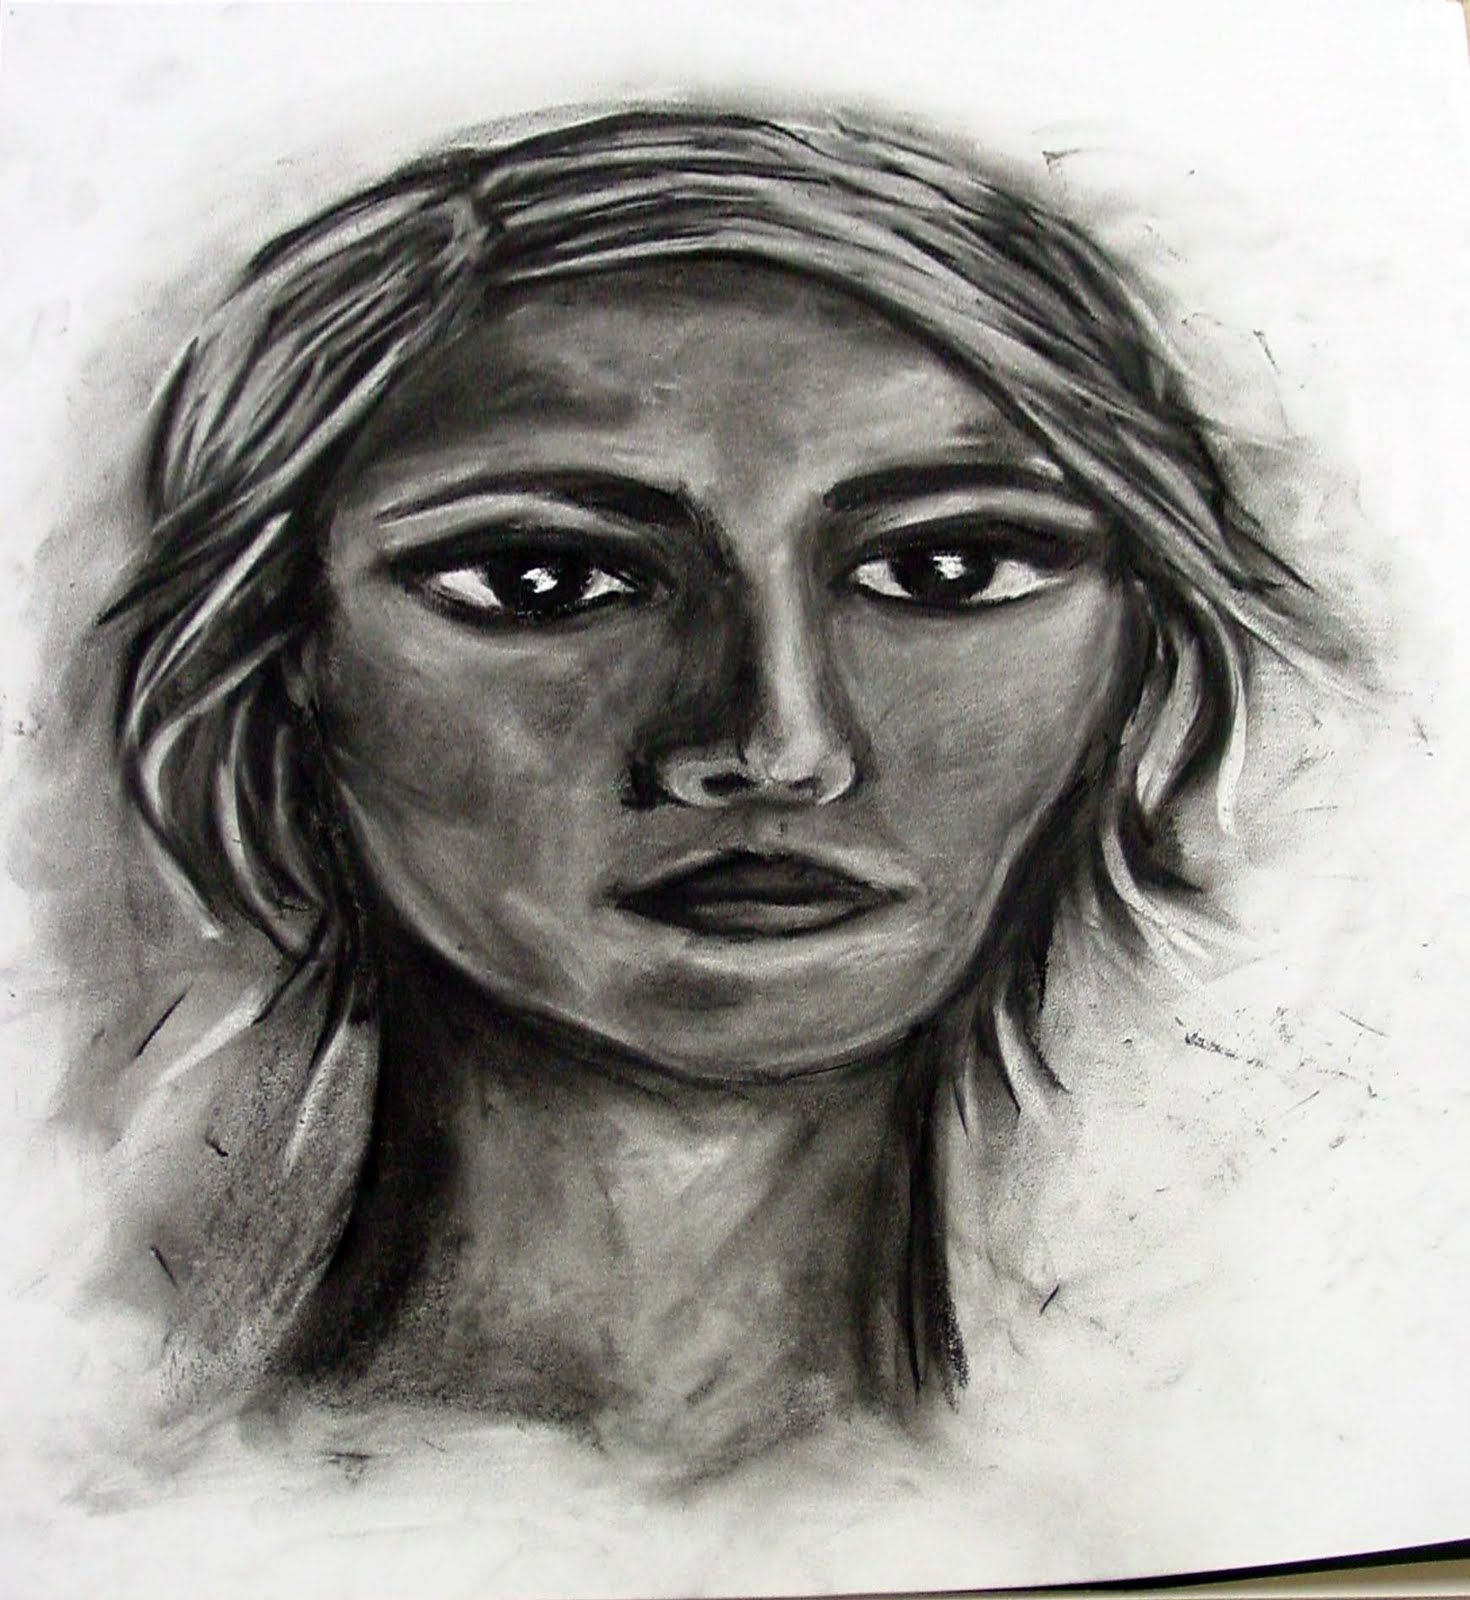 Drawn portrait beginner And not achieved of Katie's